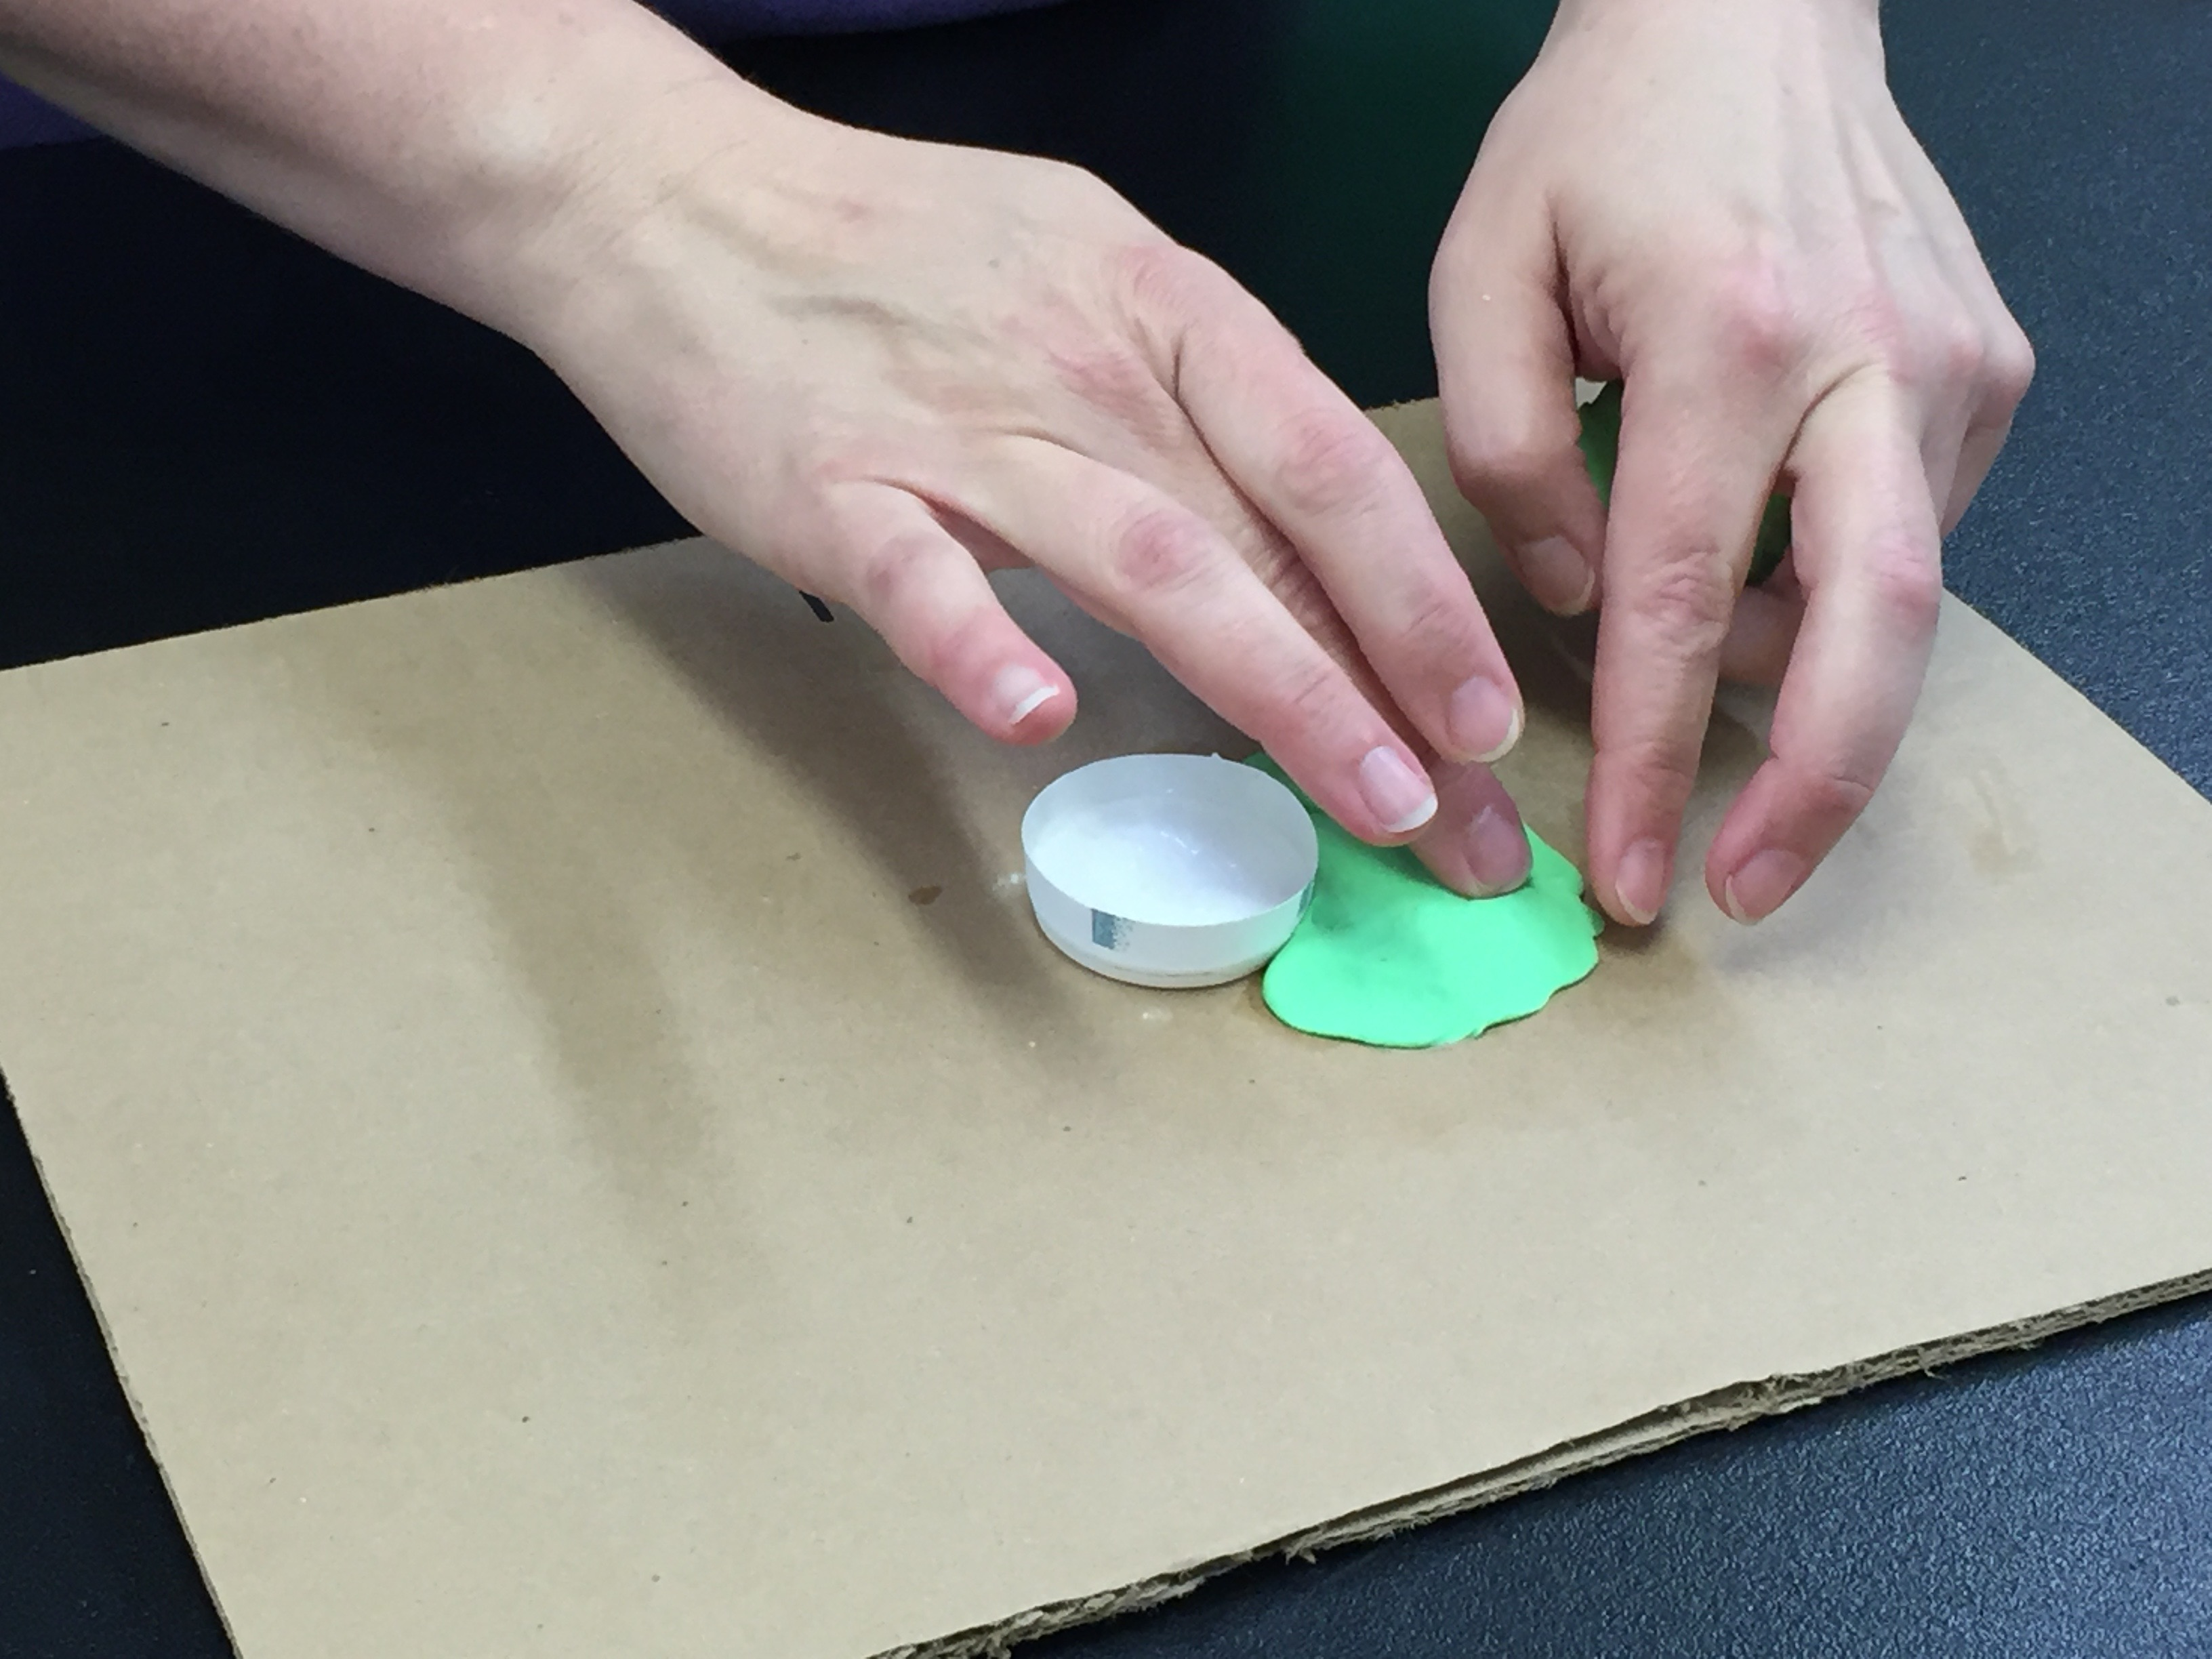 placing the play dough on the cardboard